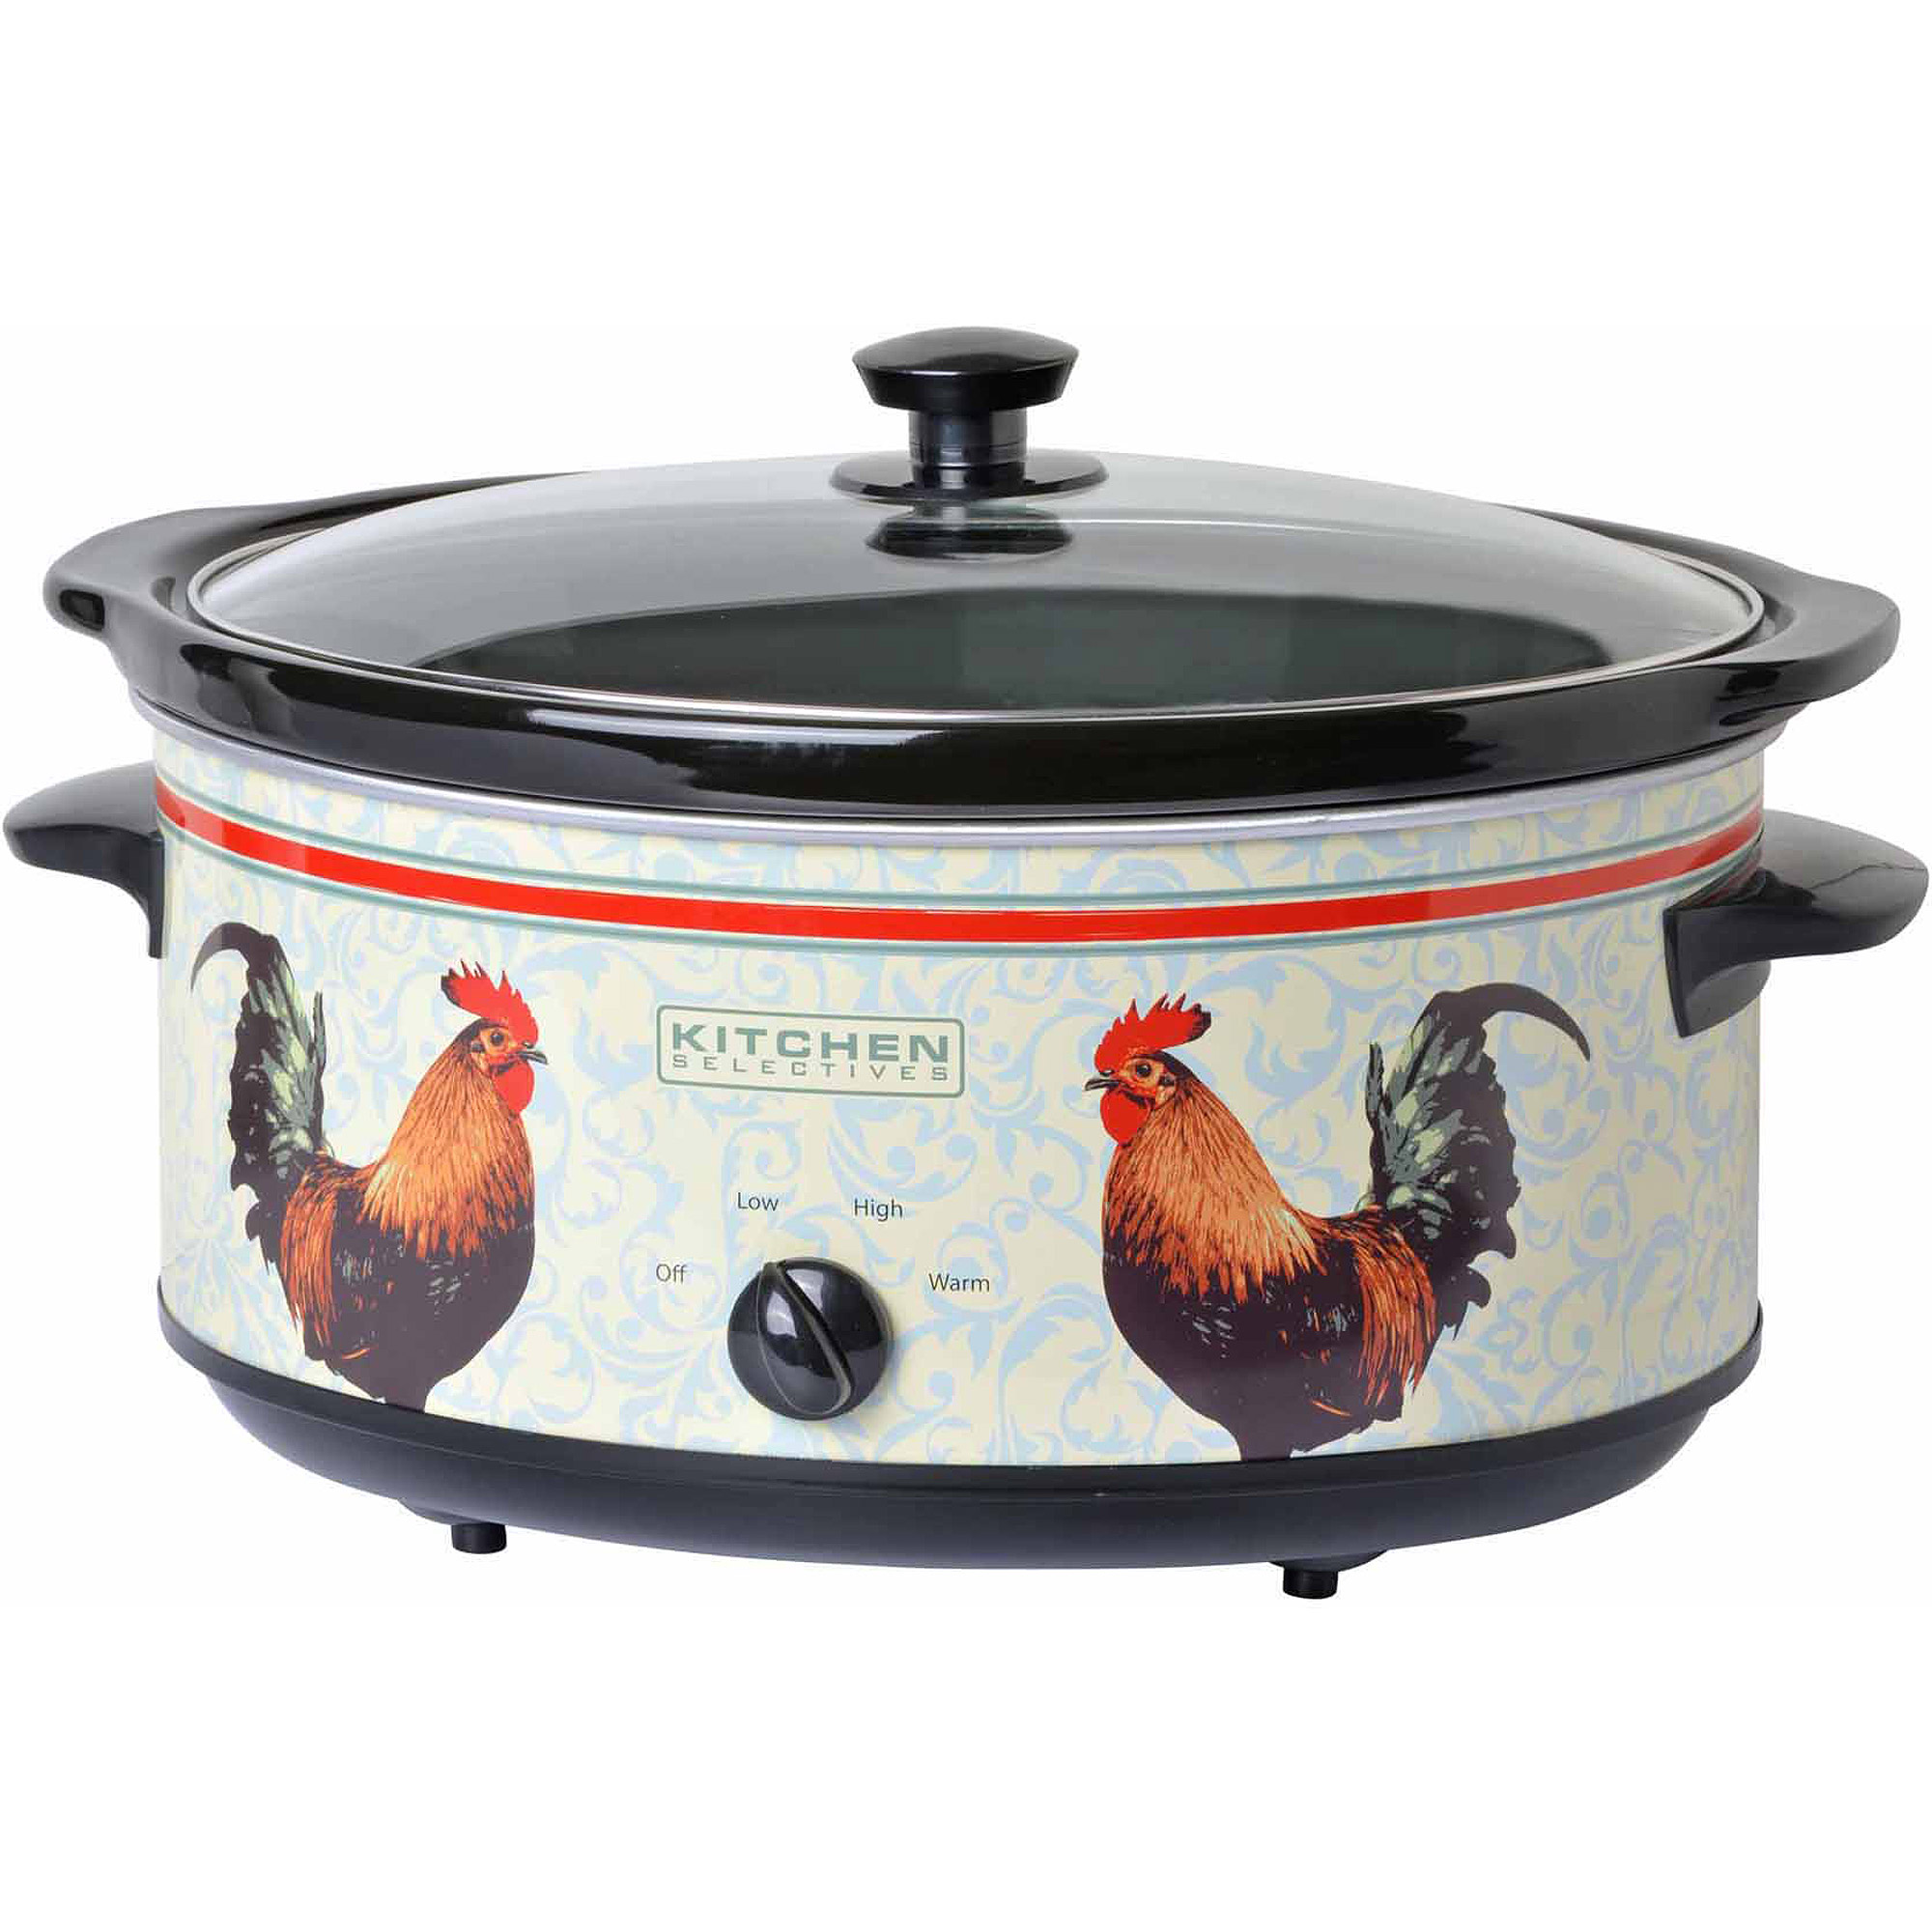 Kitchen Selectives 6.5-Quart Oval Slow Cooker, Rooster, Multi